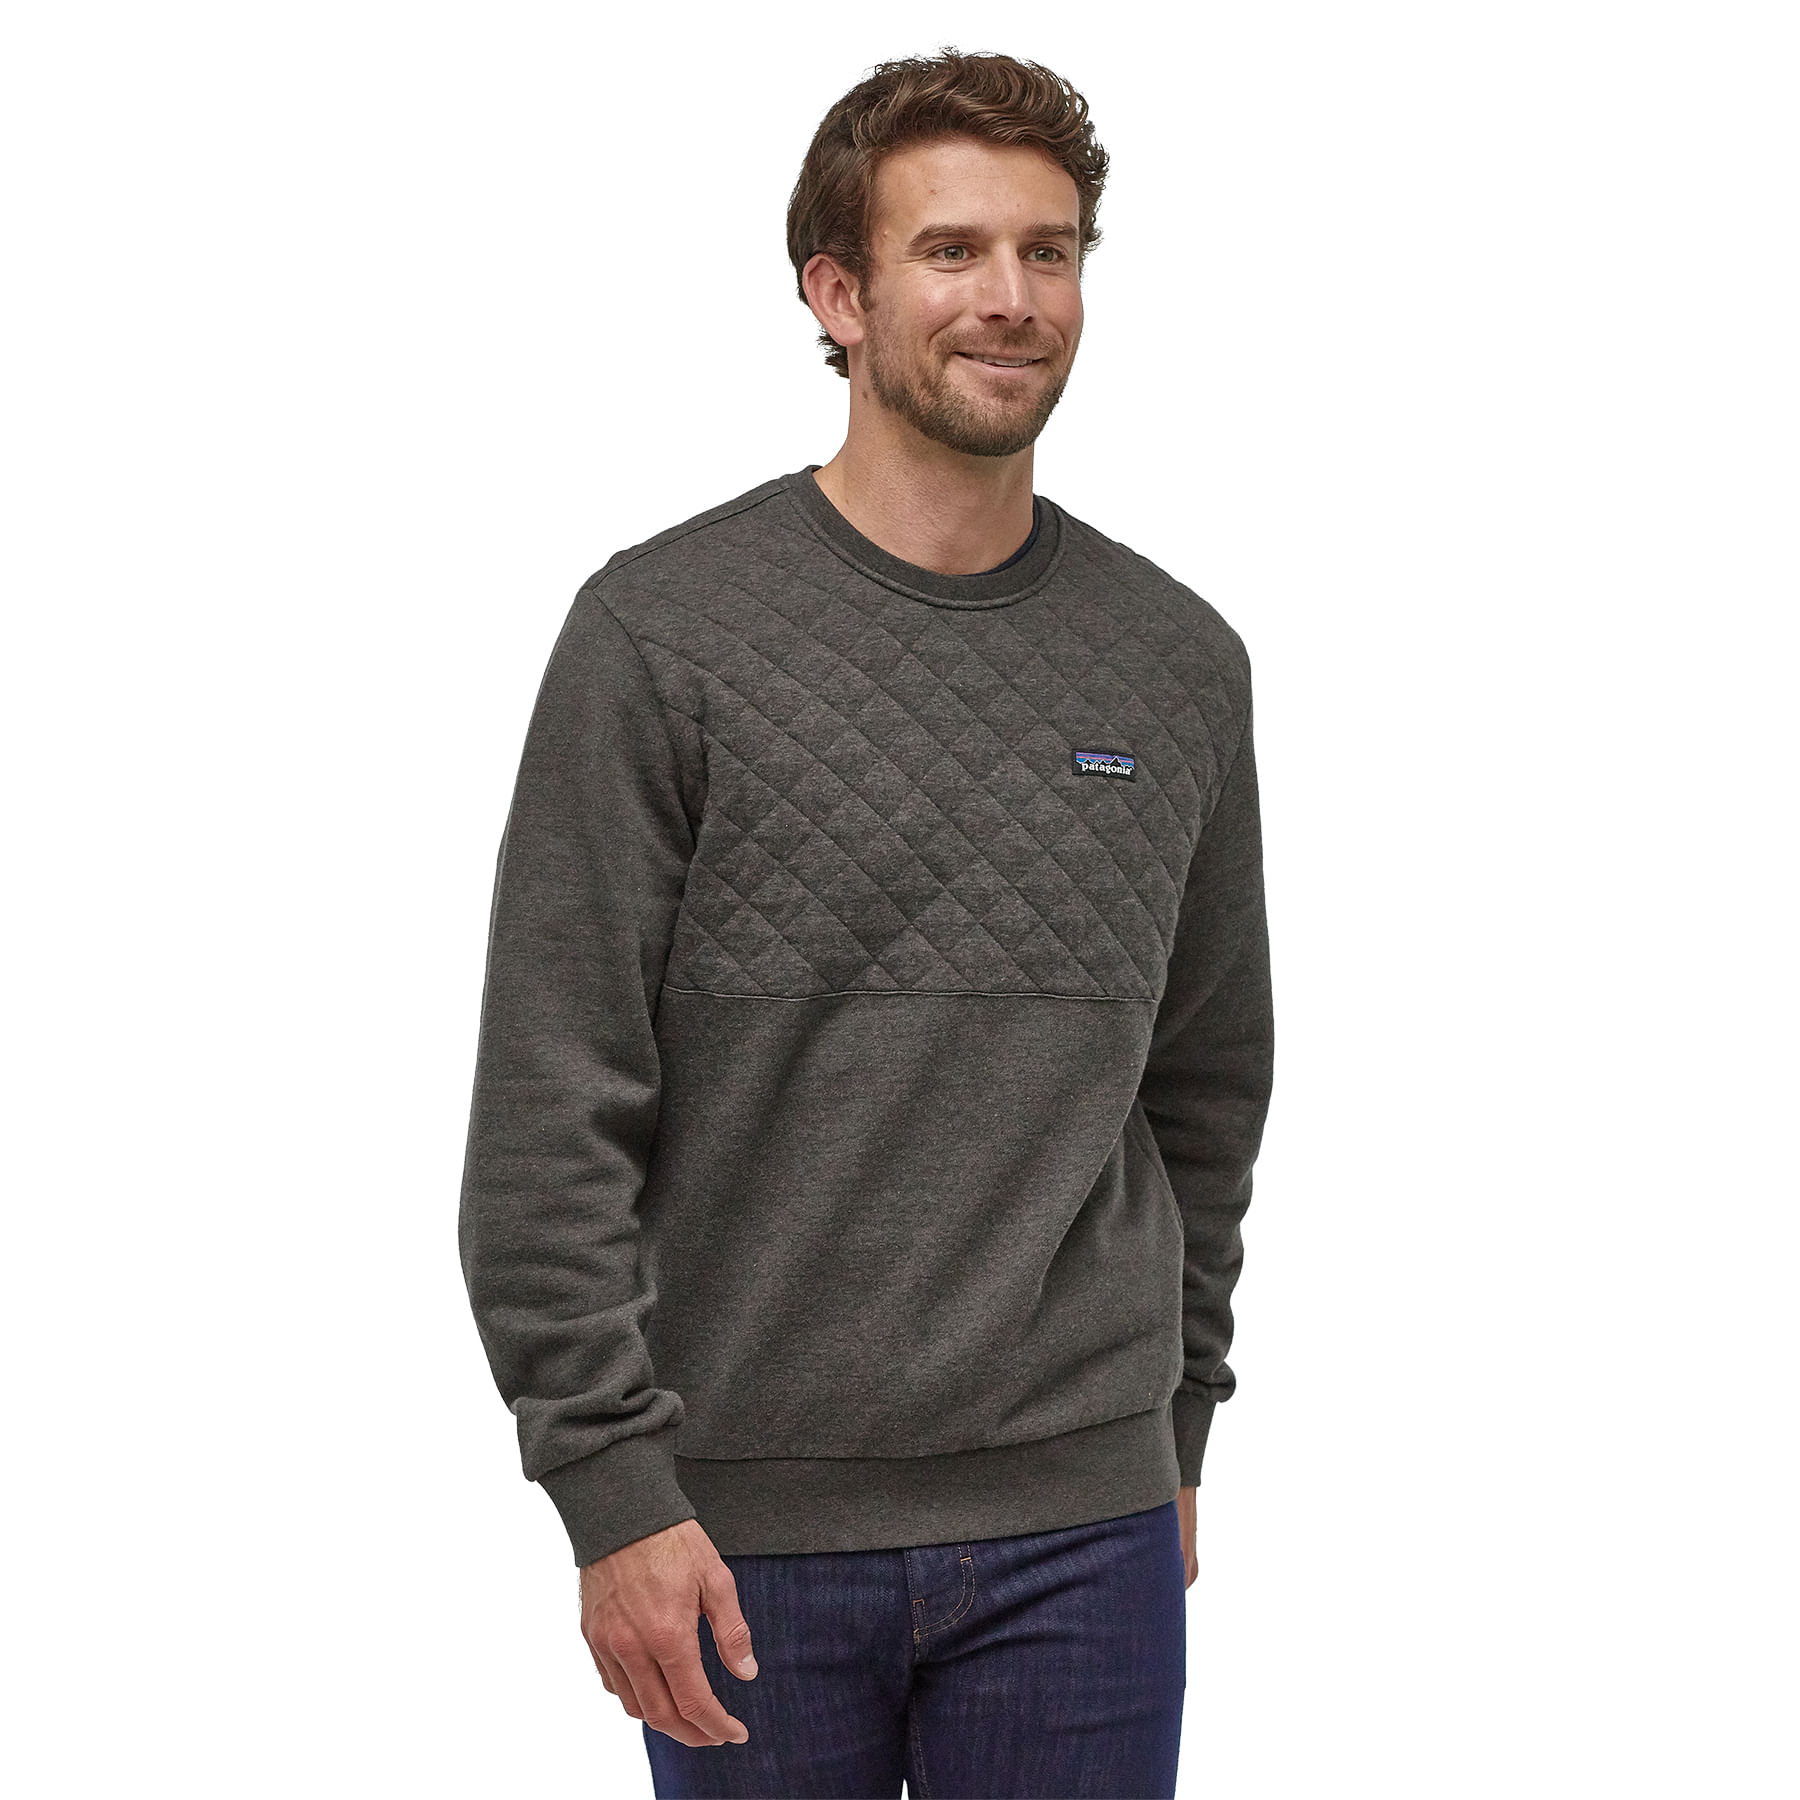 Patagonia Organic Cotton Quilt Crewneck Sweatshirt Men S